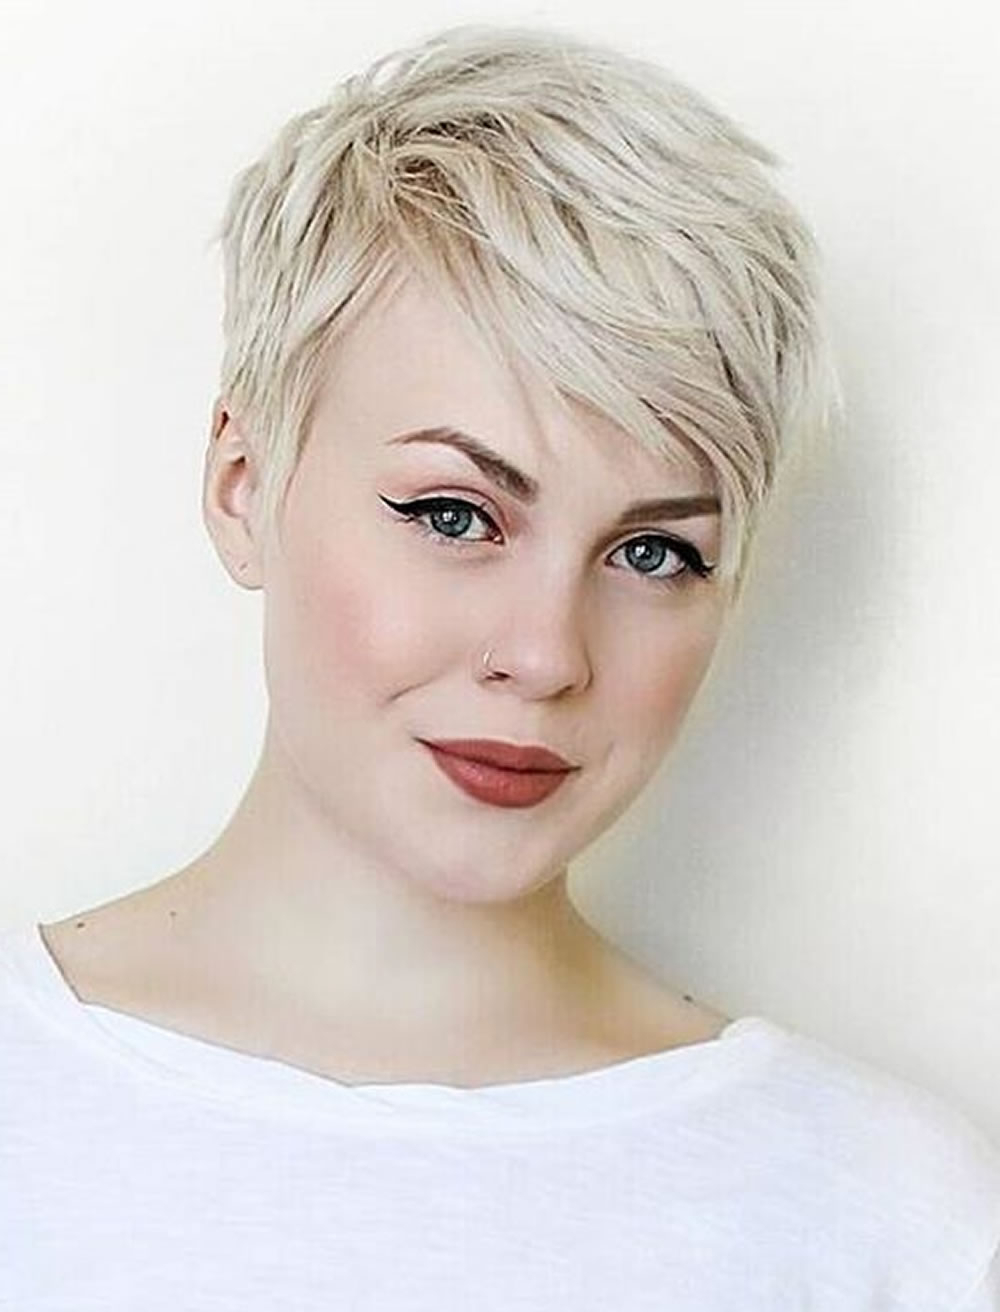 Messy Short Pixie Hairstyles For Blonde Women – Hairstyles In Messy Short Haircuts For Women (View 6 of 25)